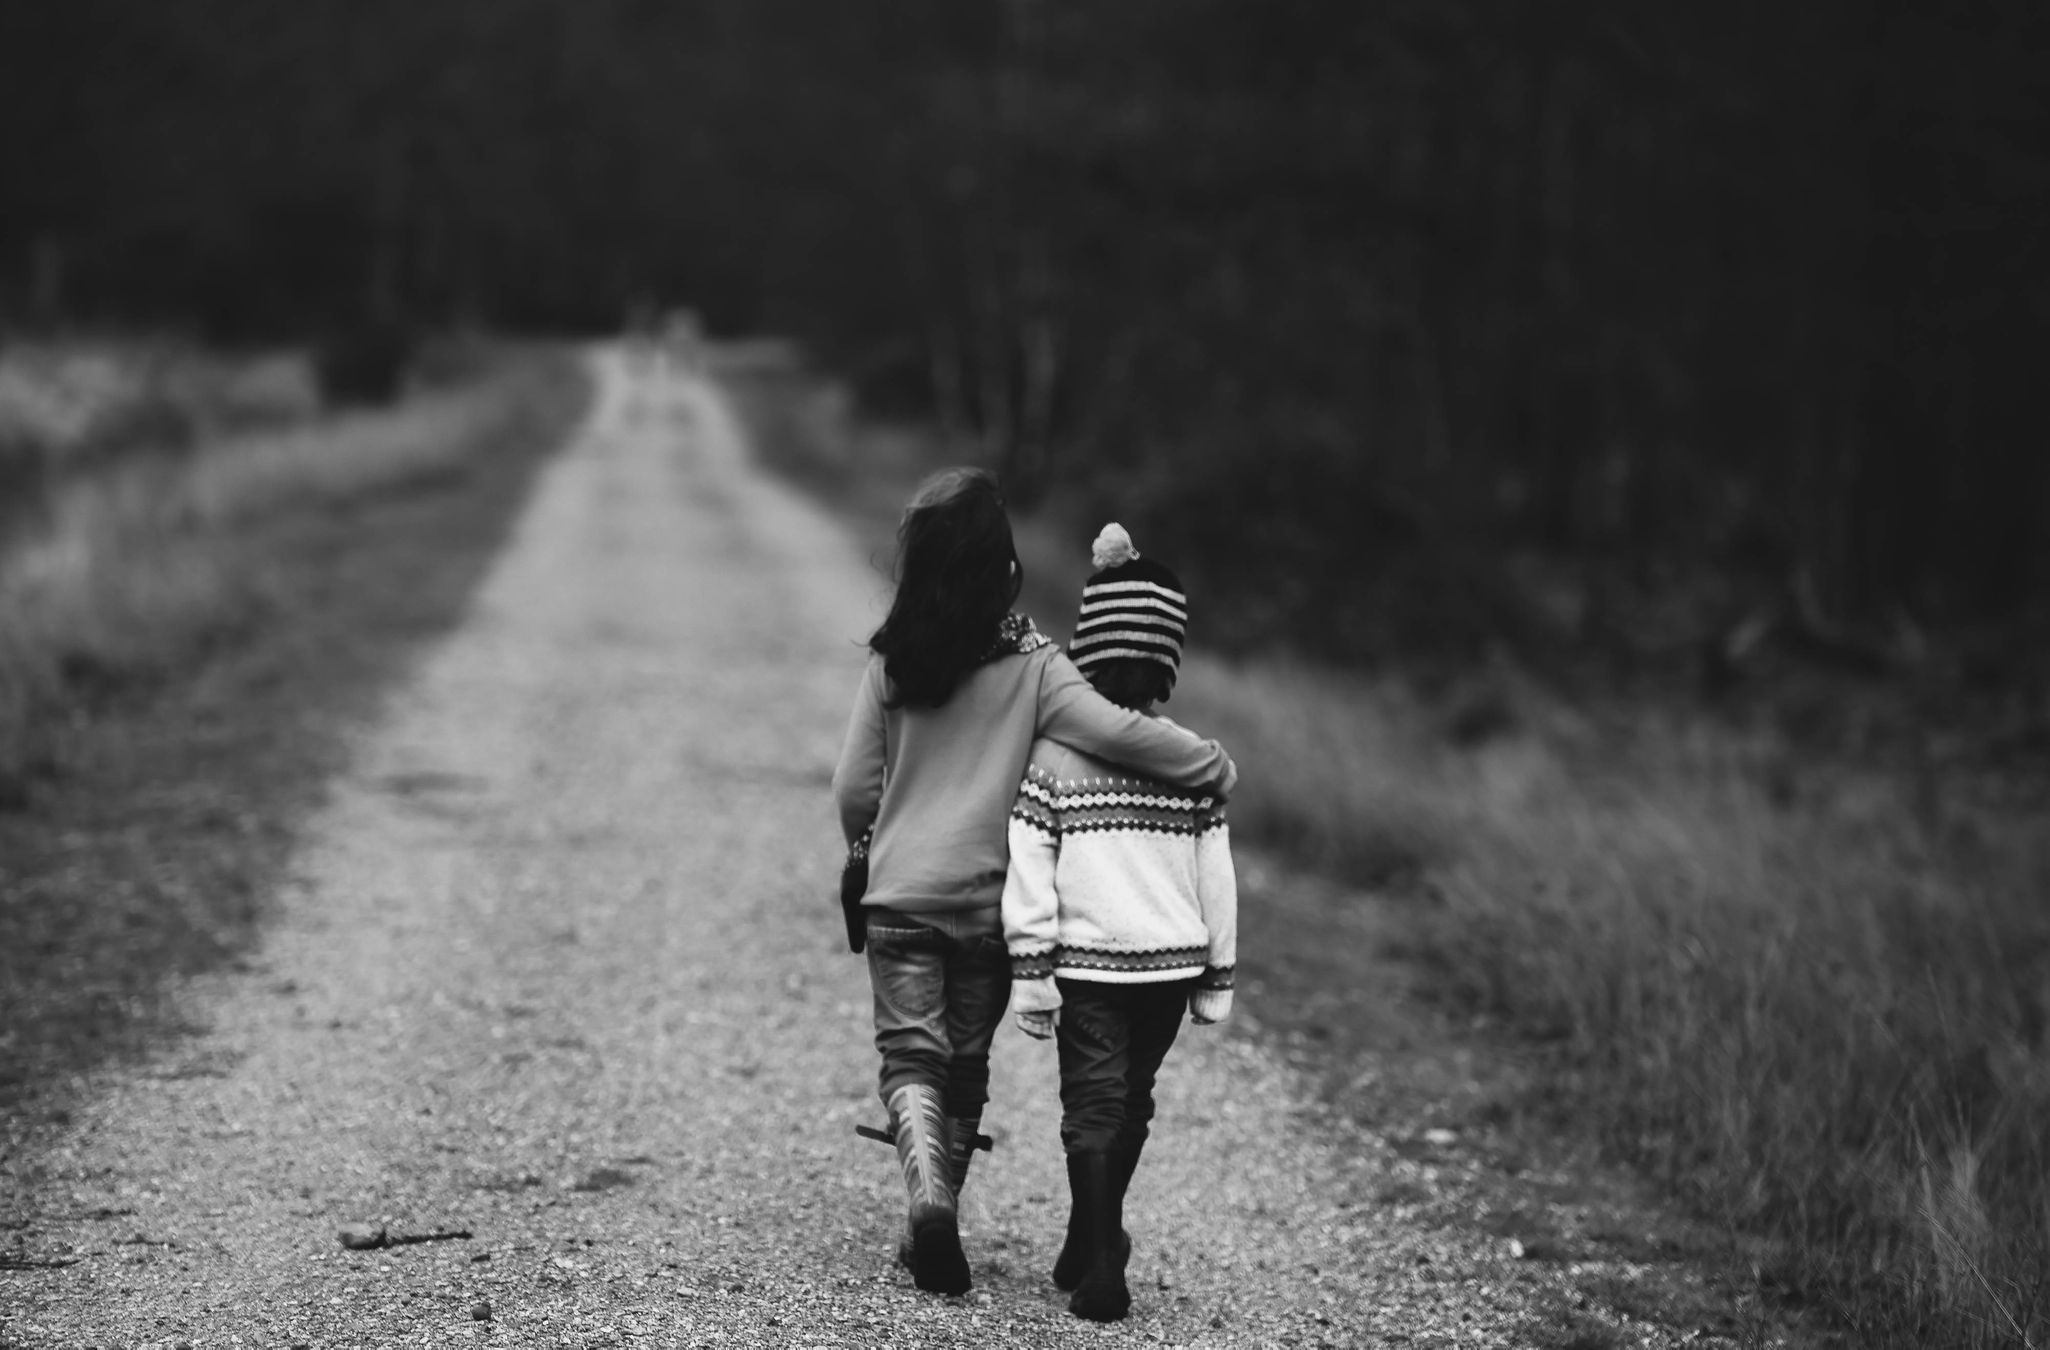 Step-sibling rivalry | How to help step-siblings get along | Greensboro Counseling